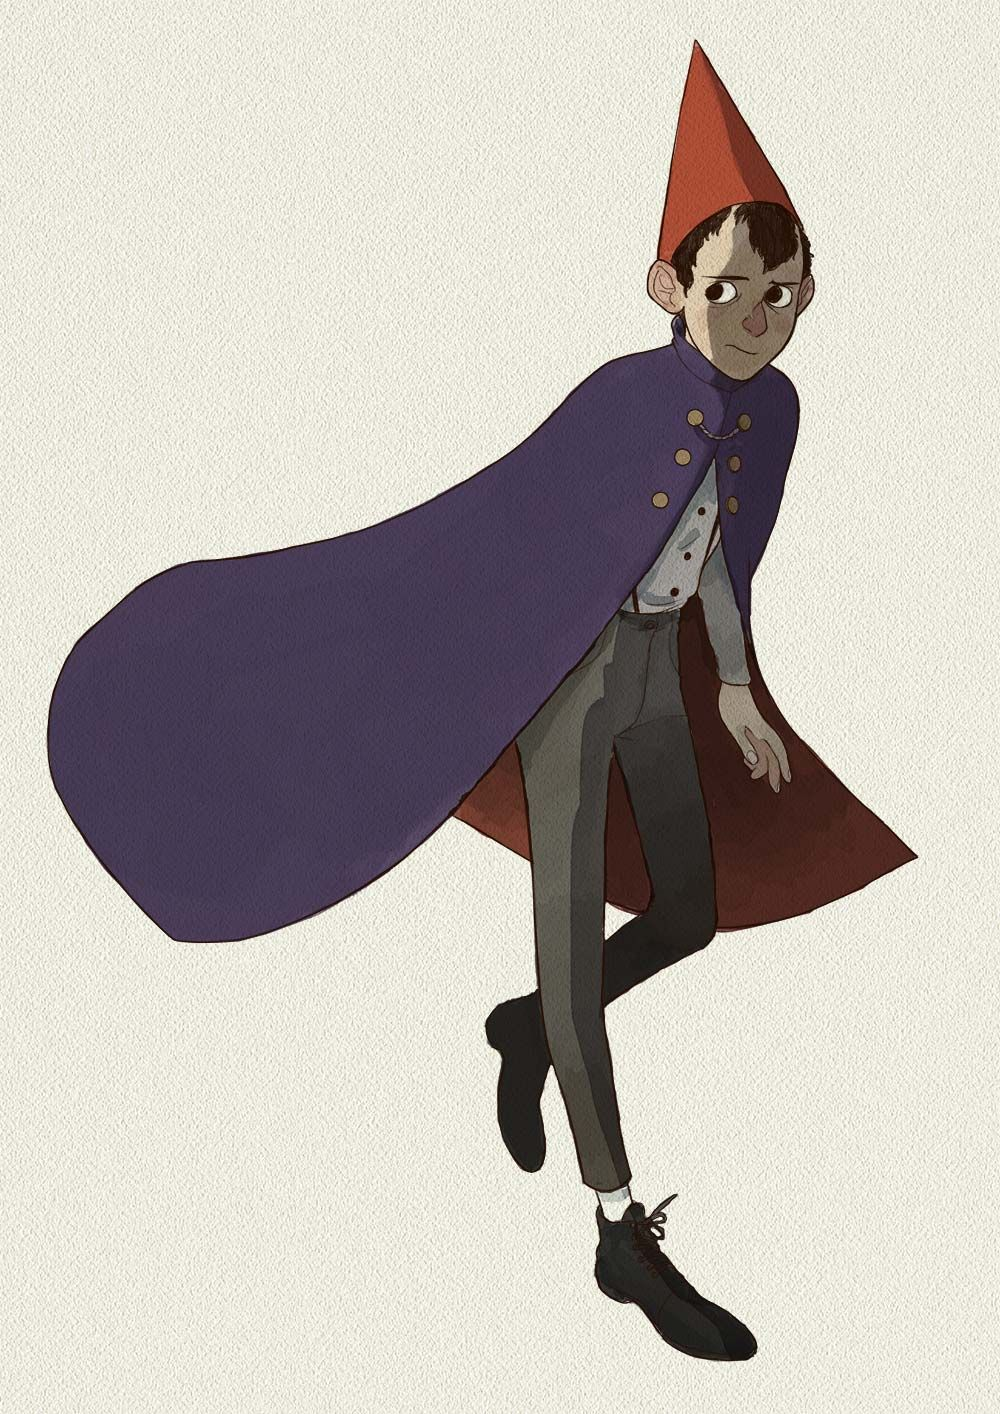 Over the garden wall art style  I couldnut resist drawing a very little Over the Garden Wall fan art